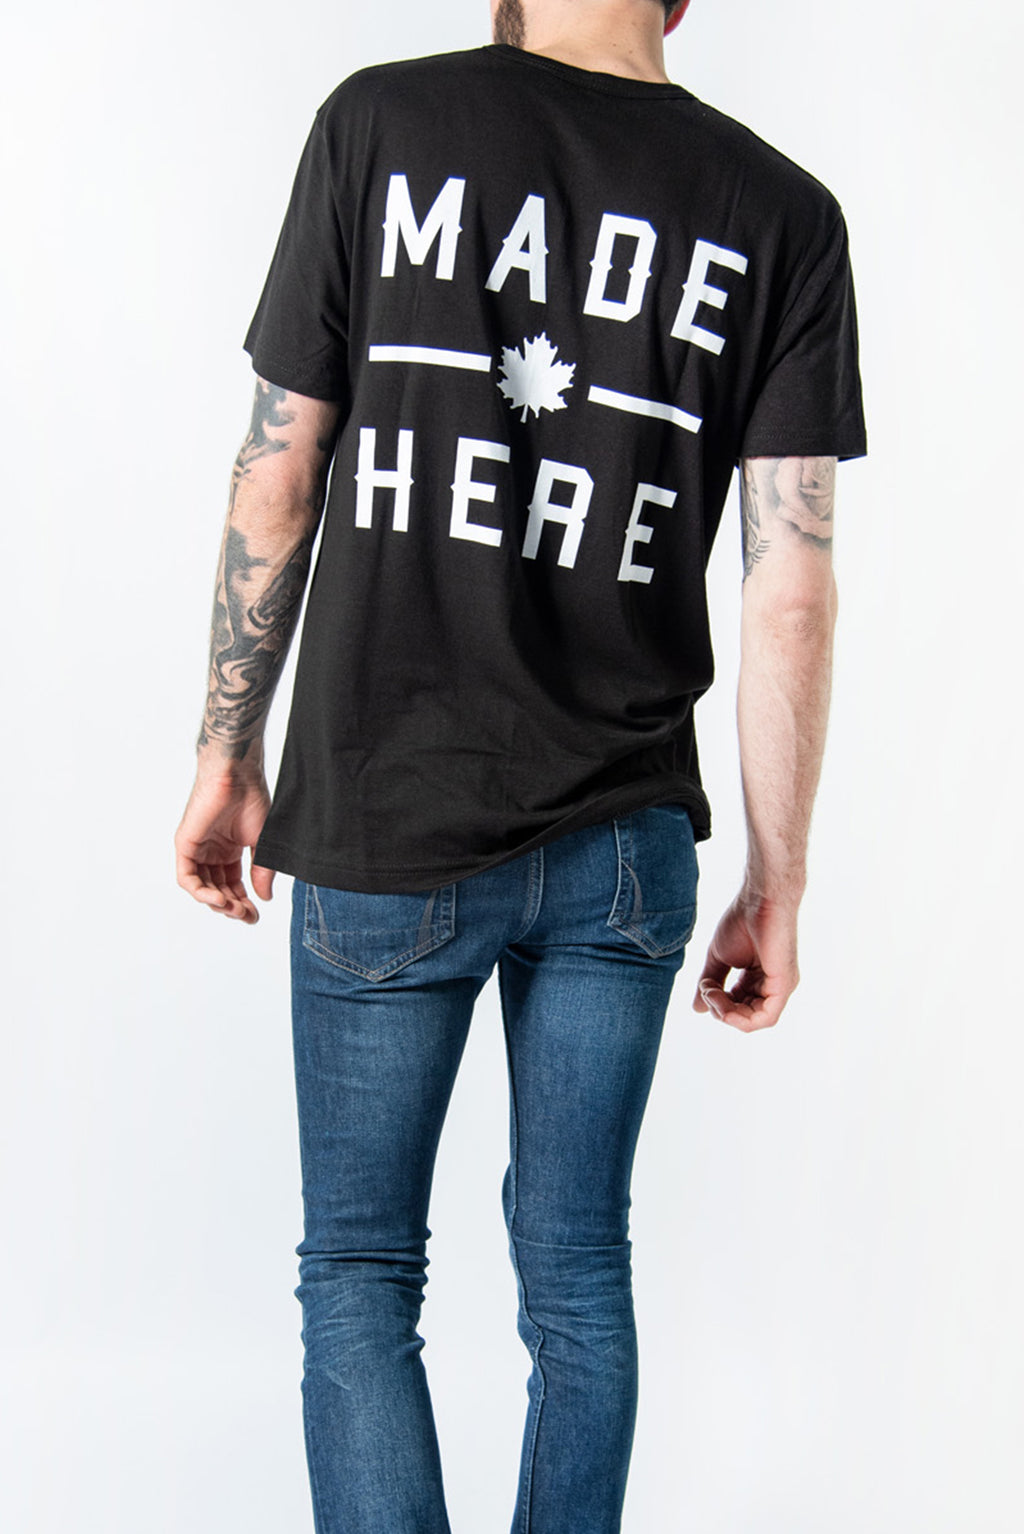 MADE HERE 'TEAM' T-SHIRT BLACK